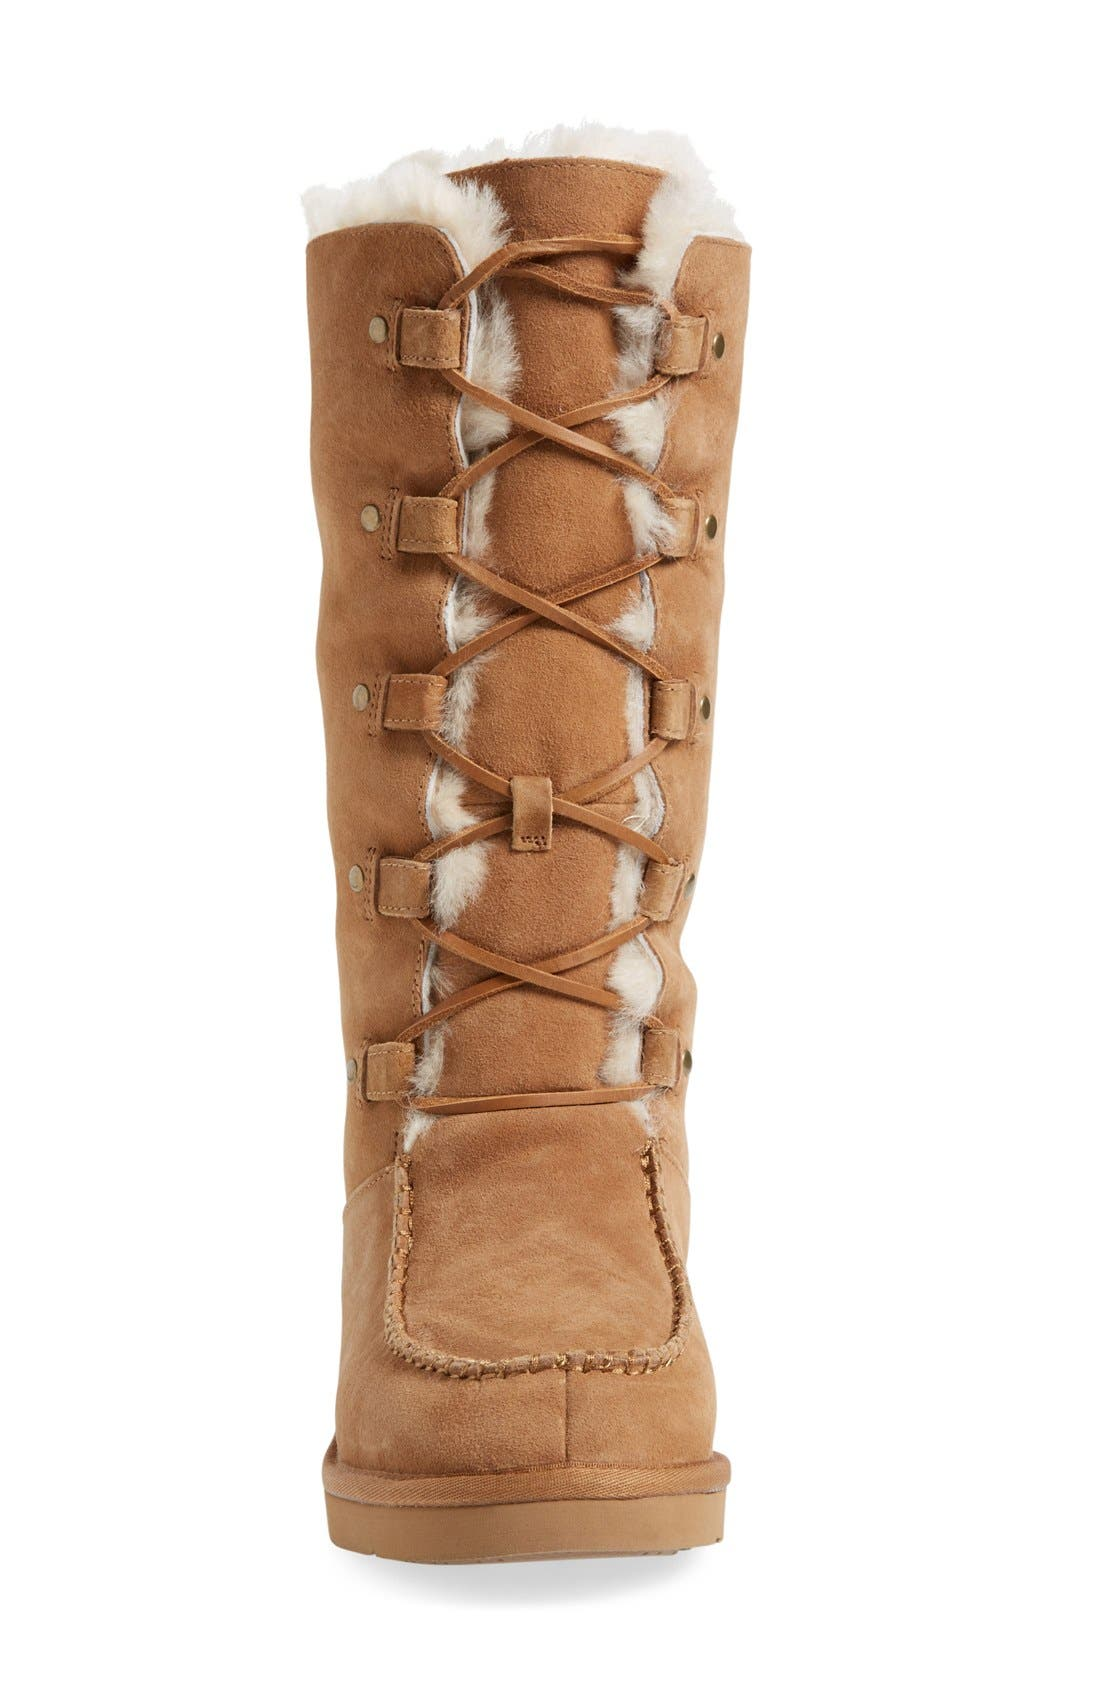 Ugg Australia Appalachian Water Resistant Lace Up Tall Boot